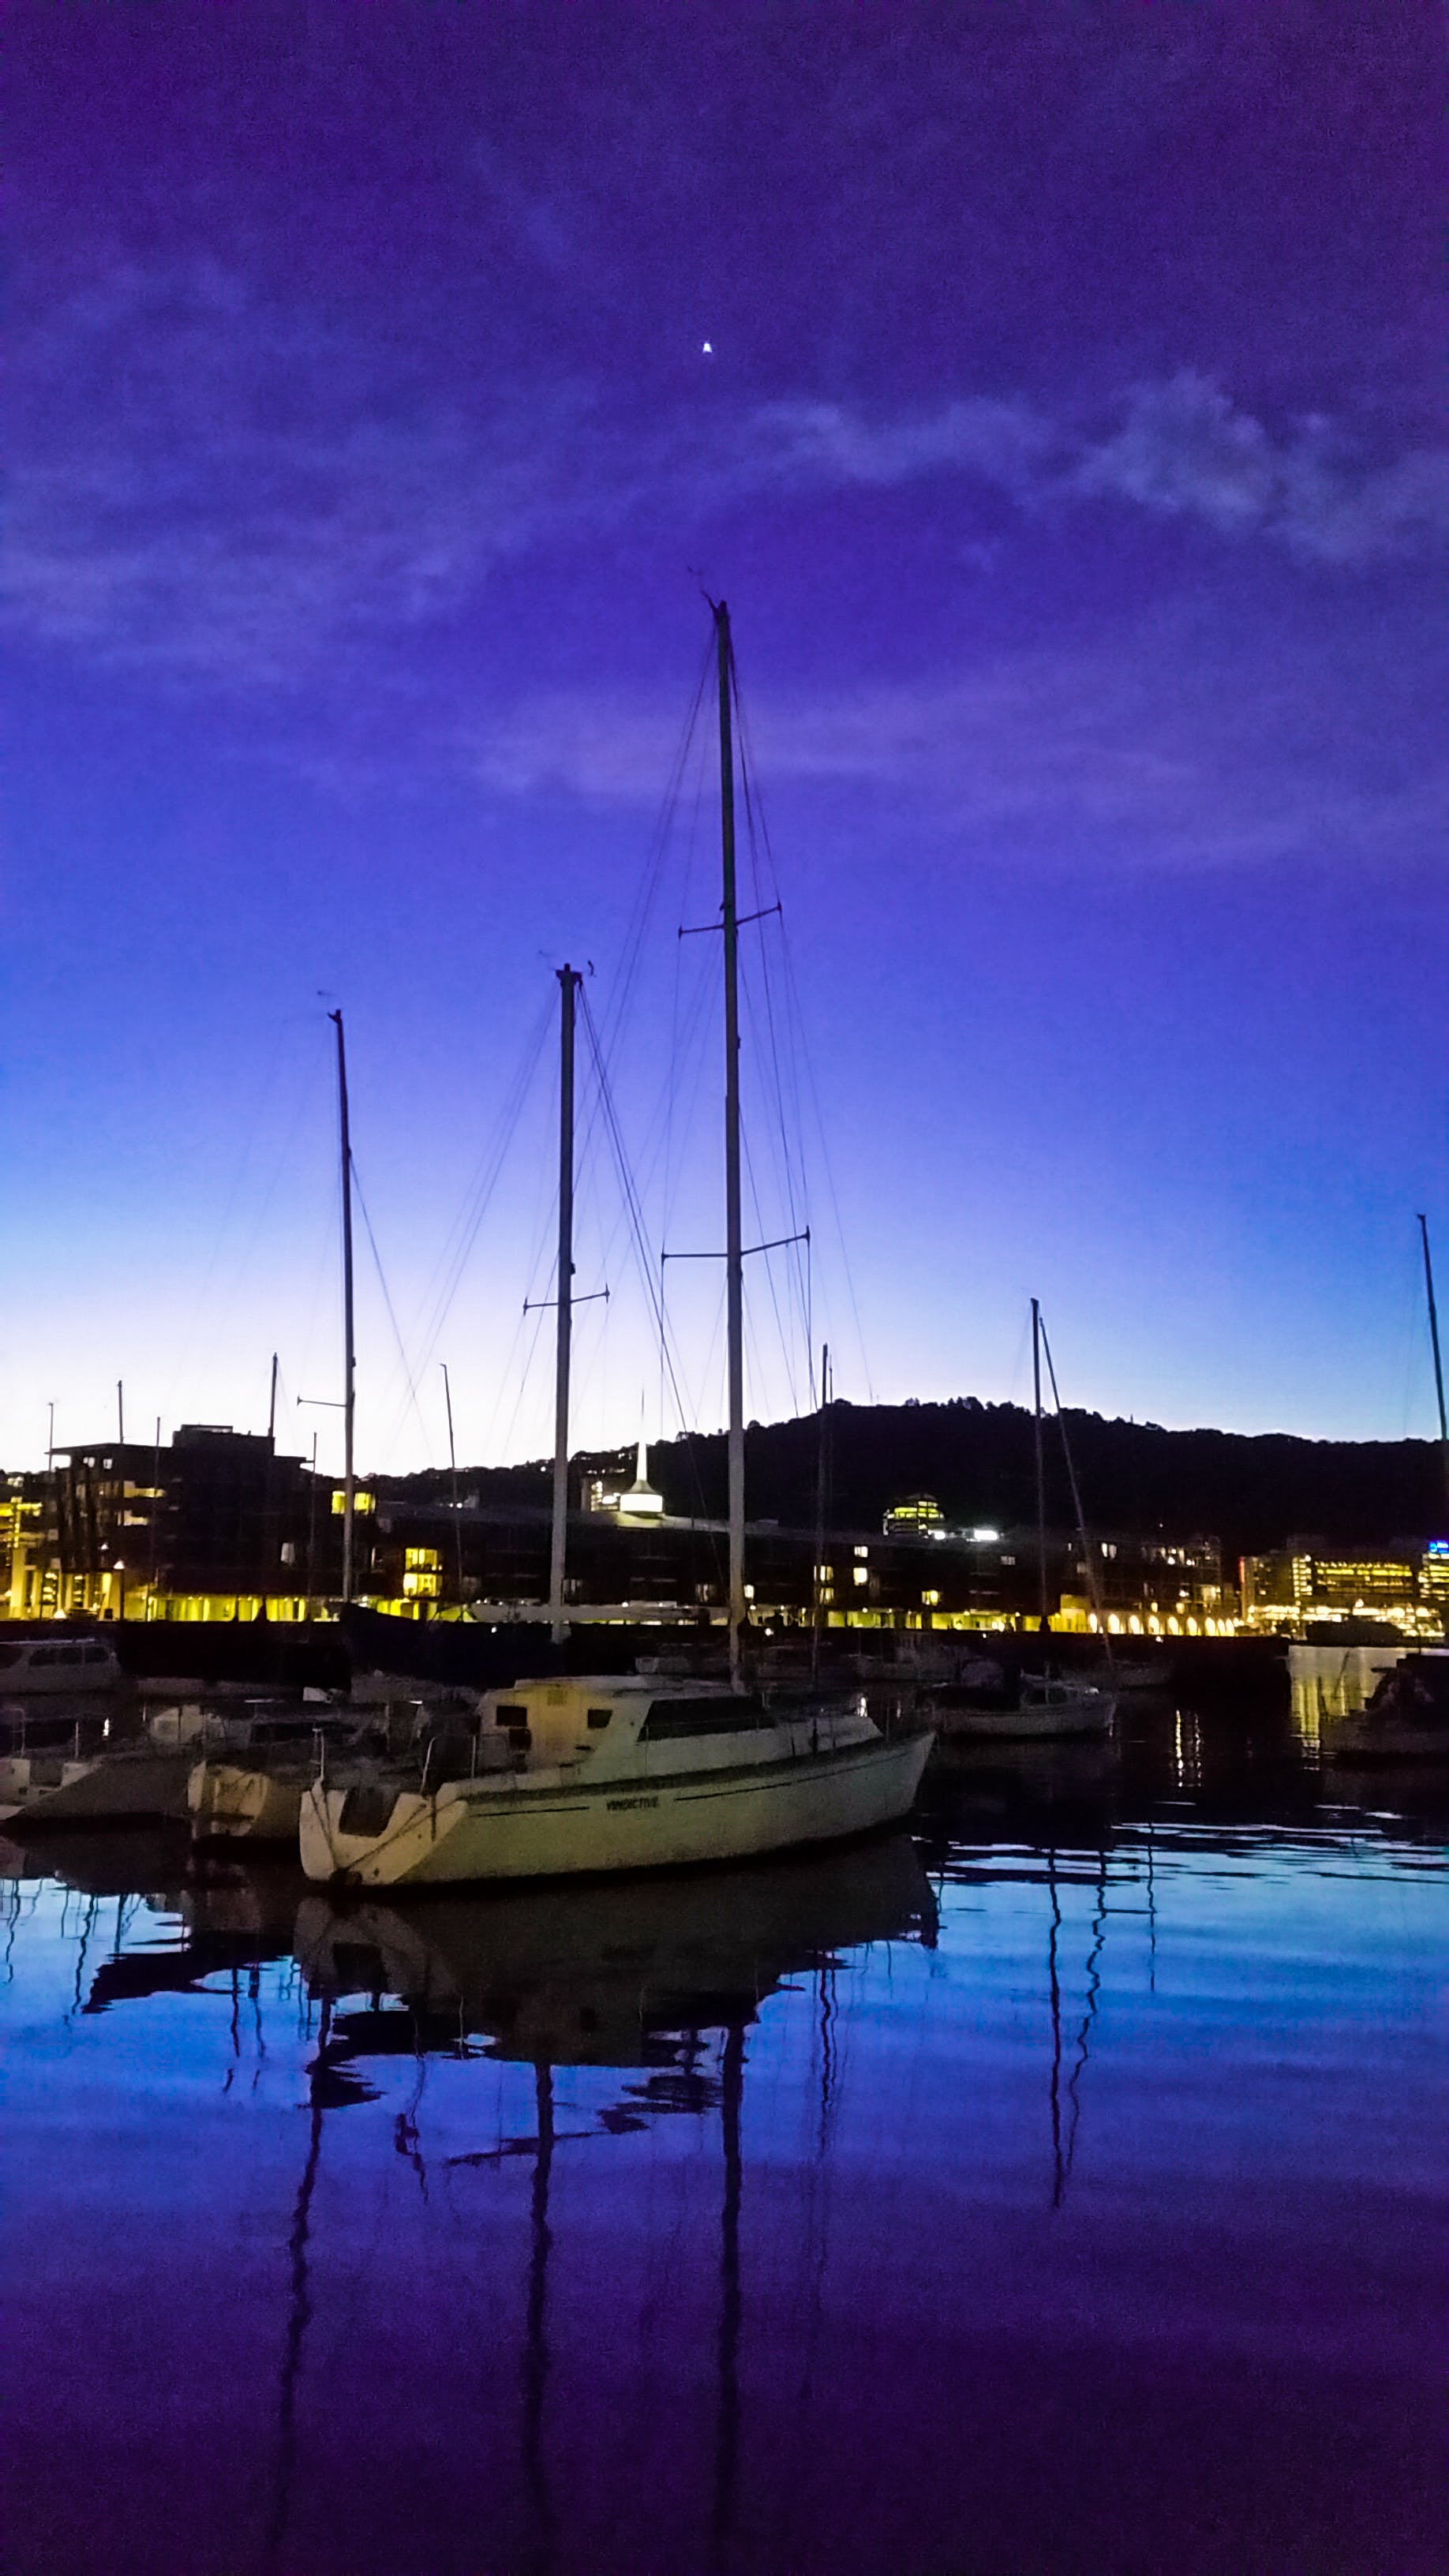 Free stock photo of night, boats, harbor, harbour